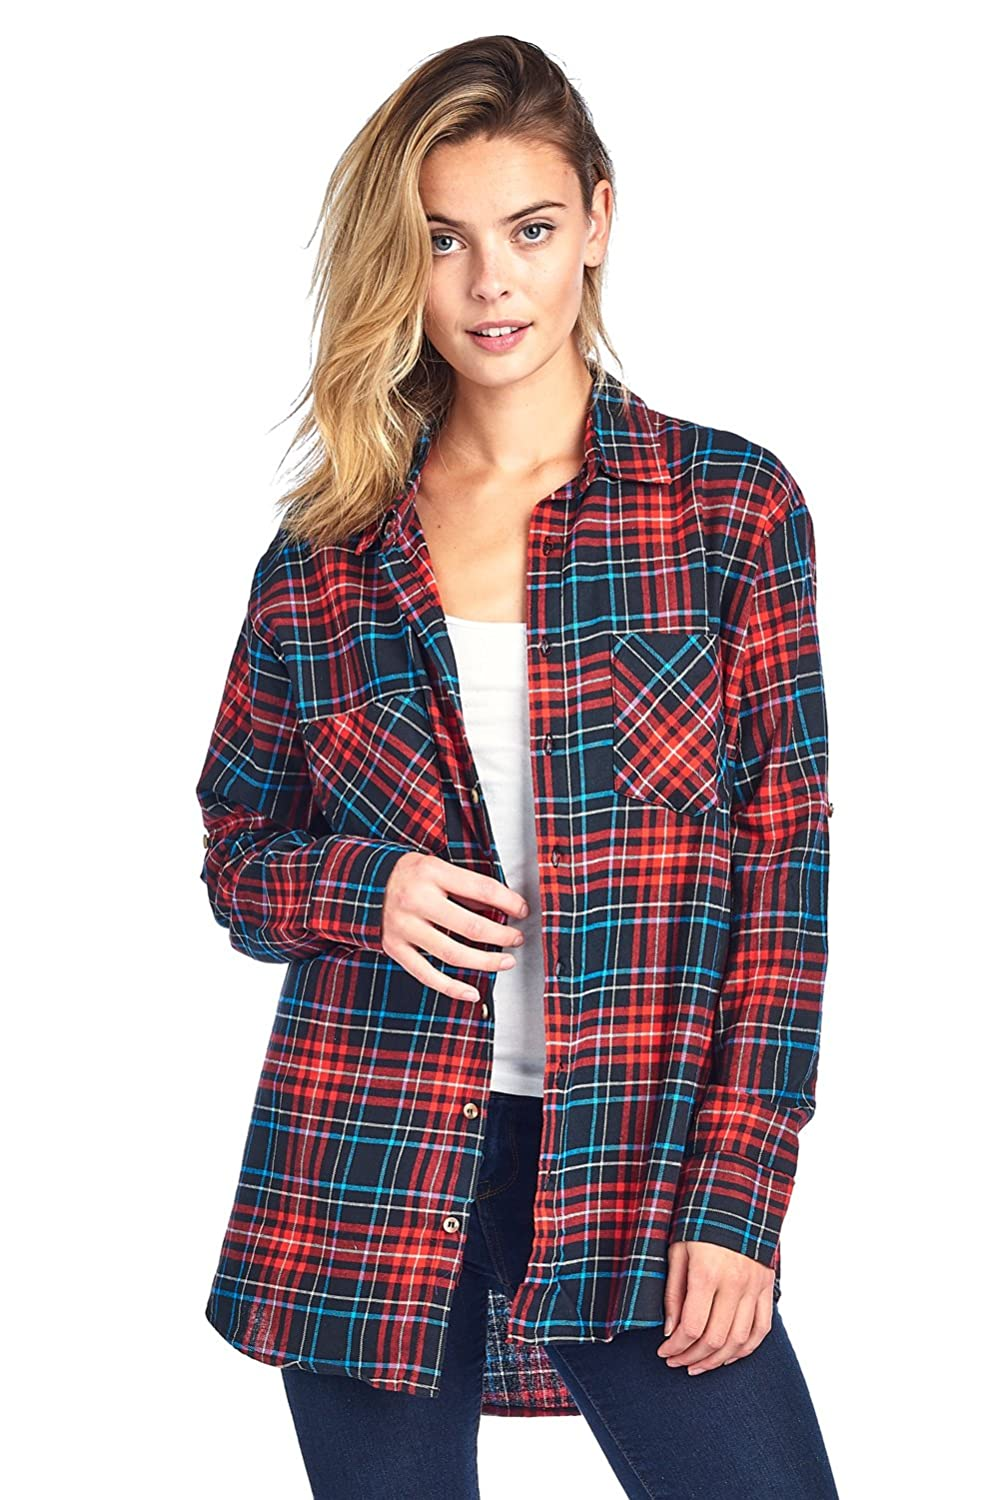 2de924746 Oversized (One Size) Plaid Flannel Long Sleeve Shirt features Two Front  Chest Pockets, Collar, Button Up Closure, and tab on sleeves.